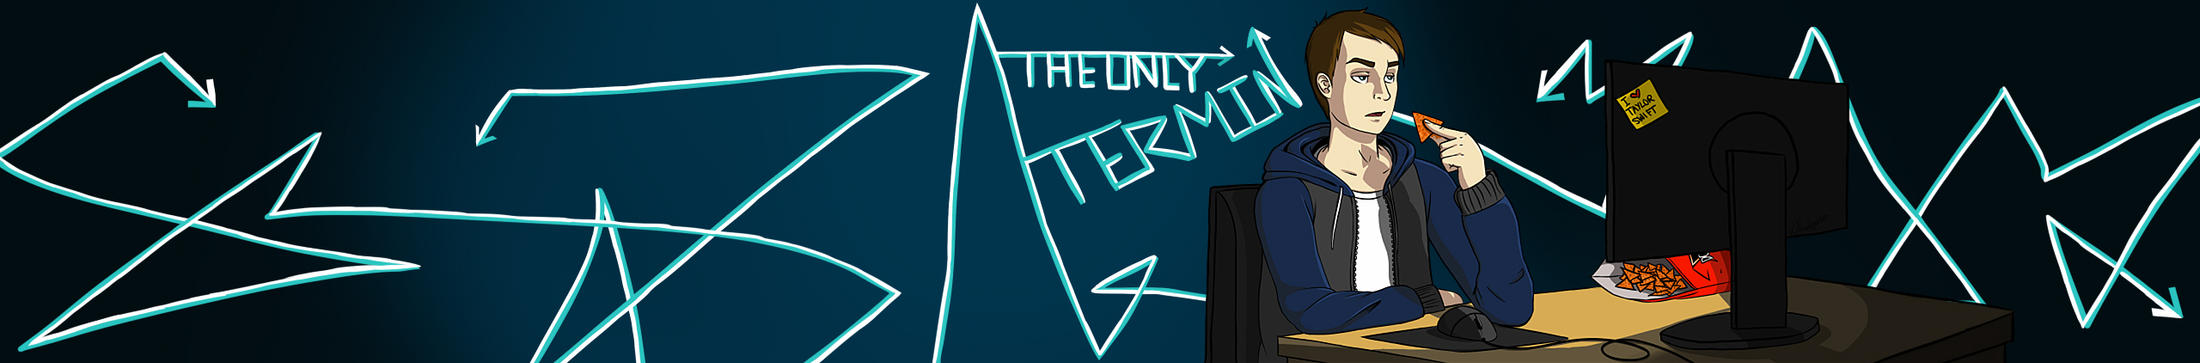 Termins Banner YT by AprilWolf